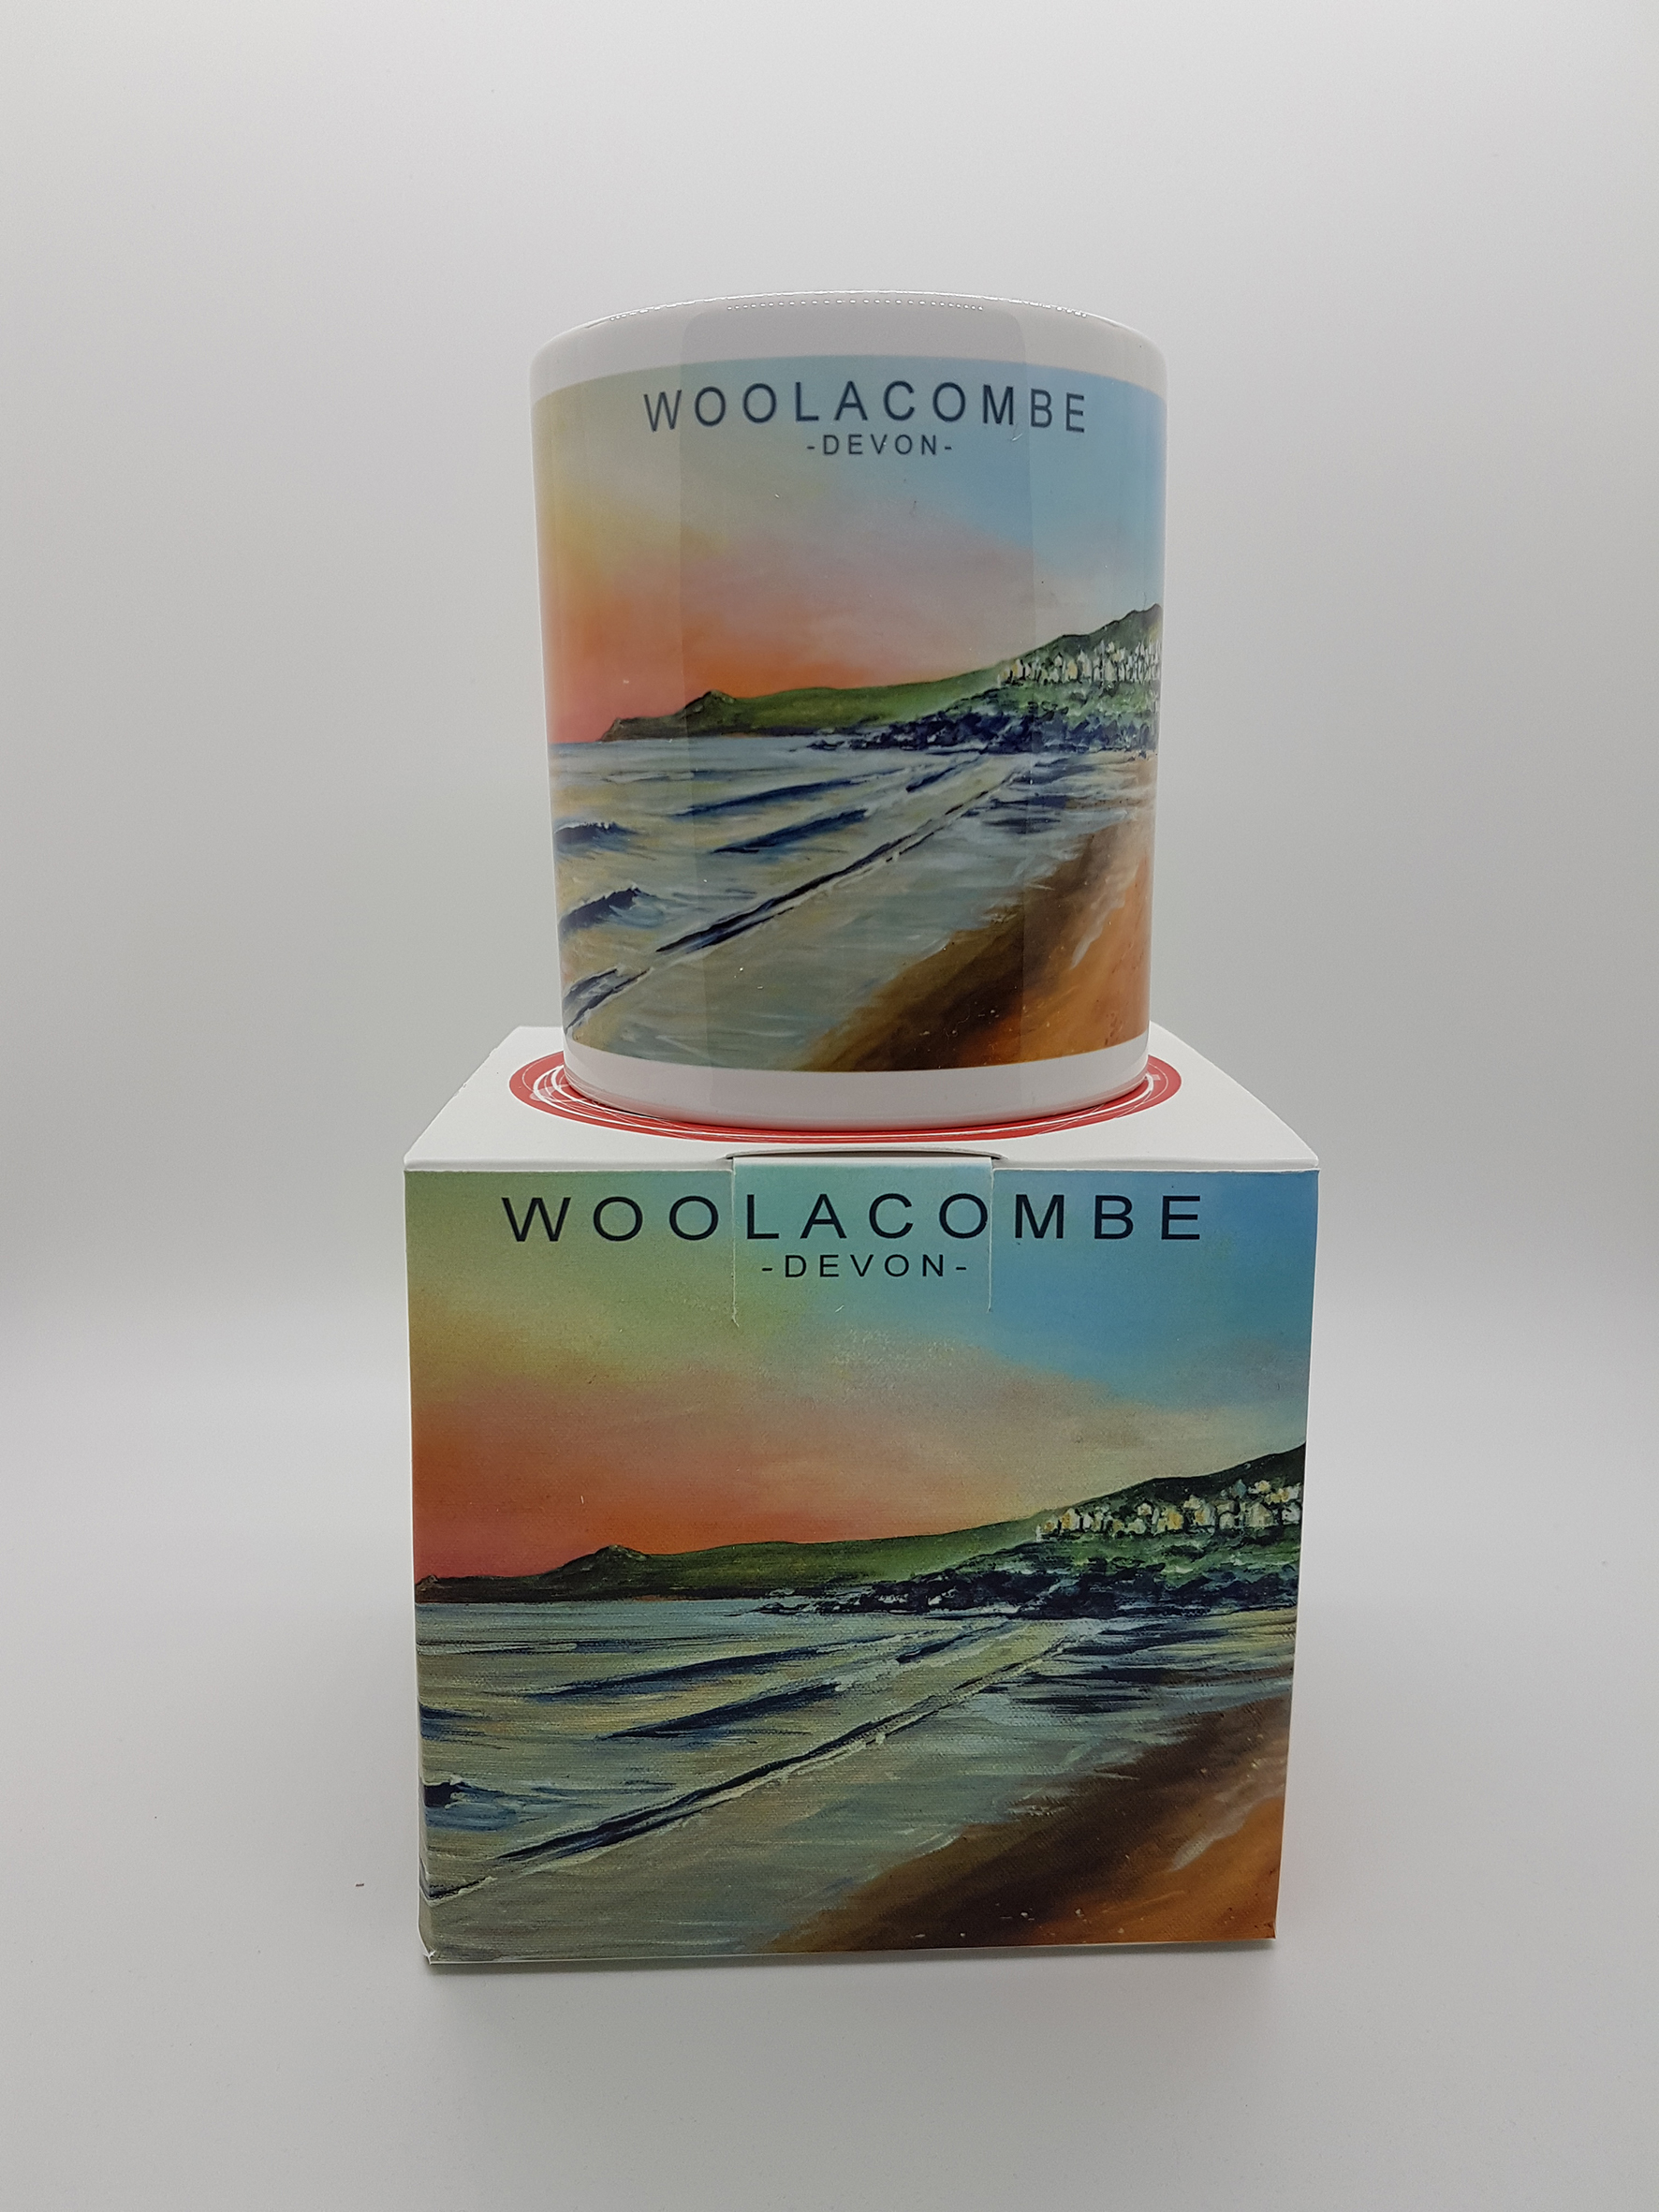 mug featuring Woolacombe beach huts at sunset